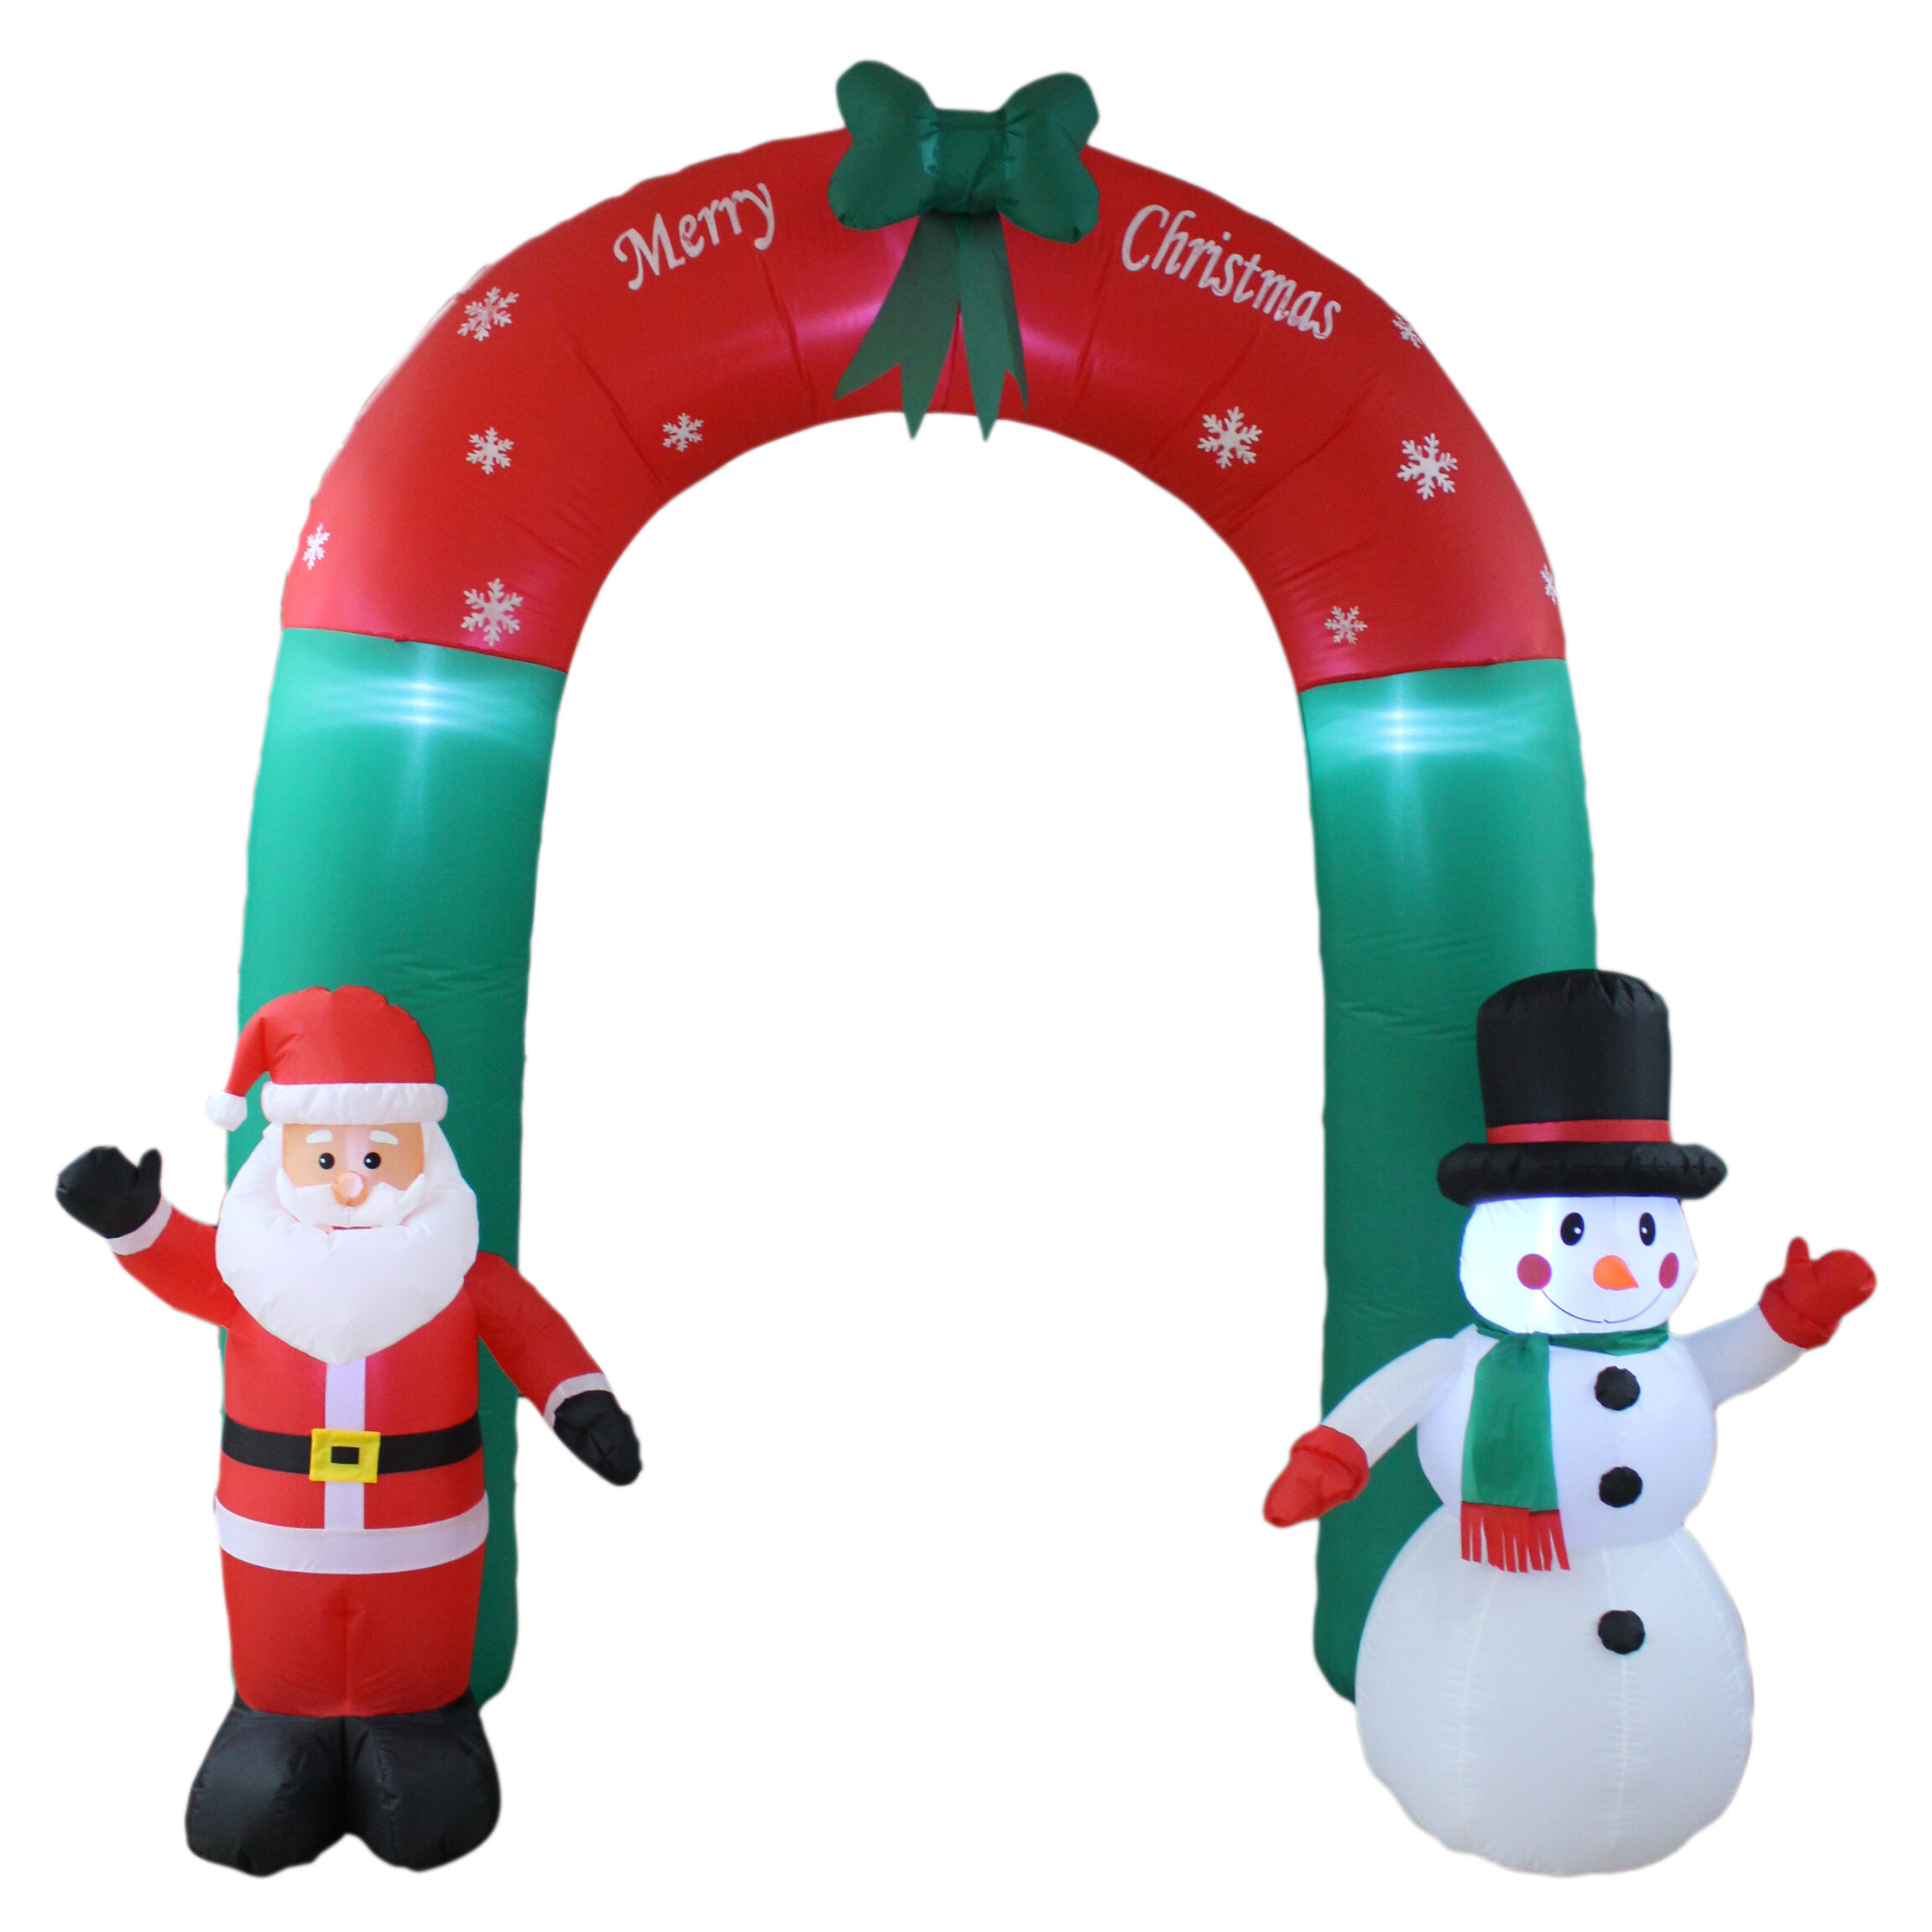 BZB Goods Christmas Inflatable Santa Claus and Snowman Arch Yard ...